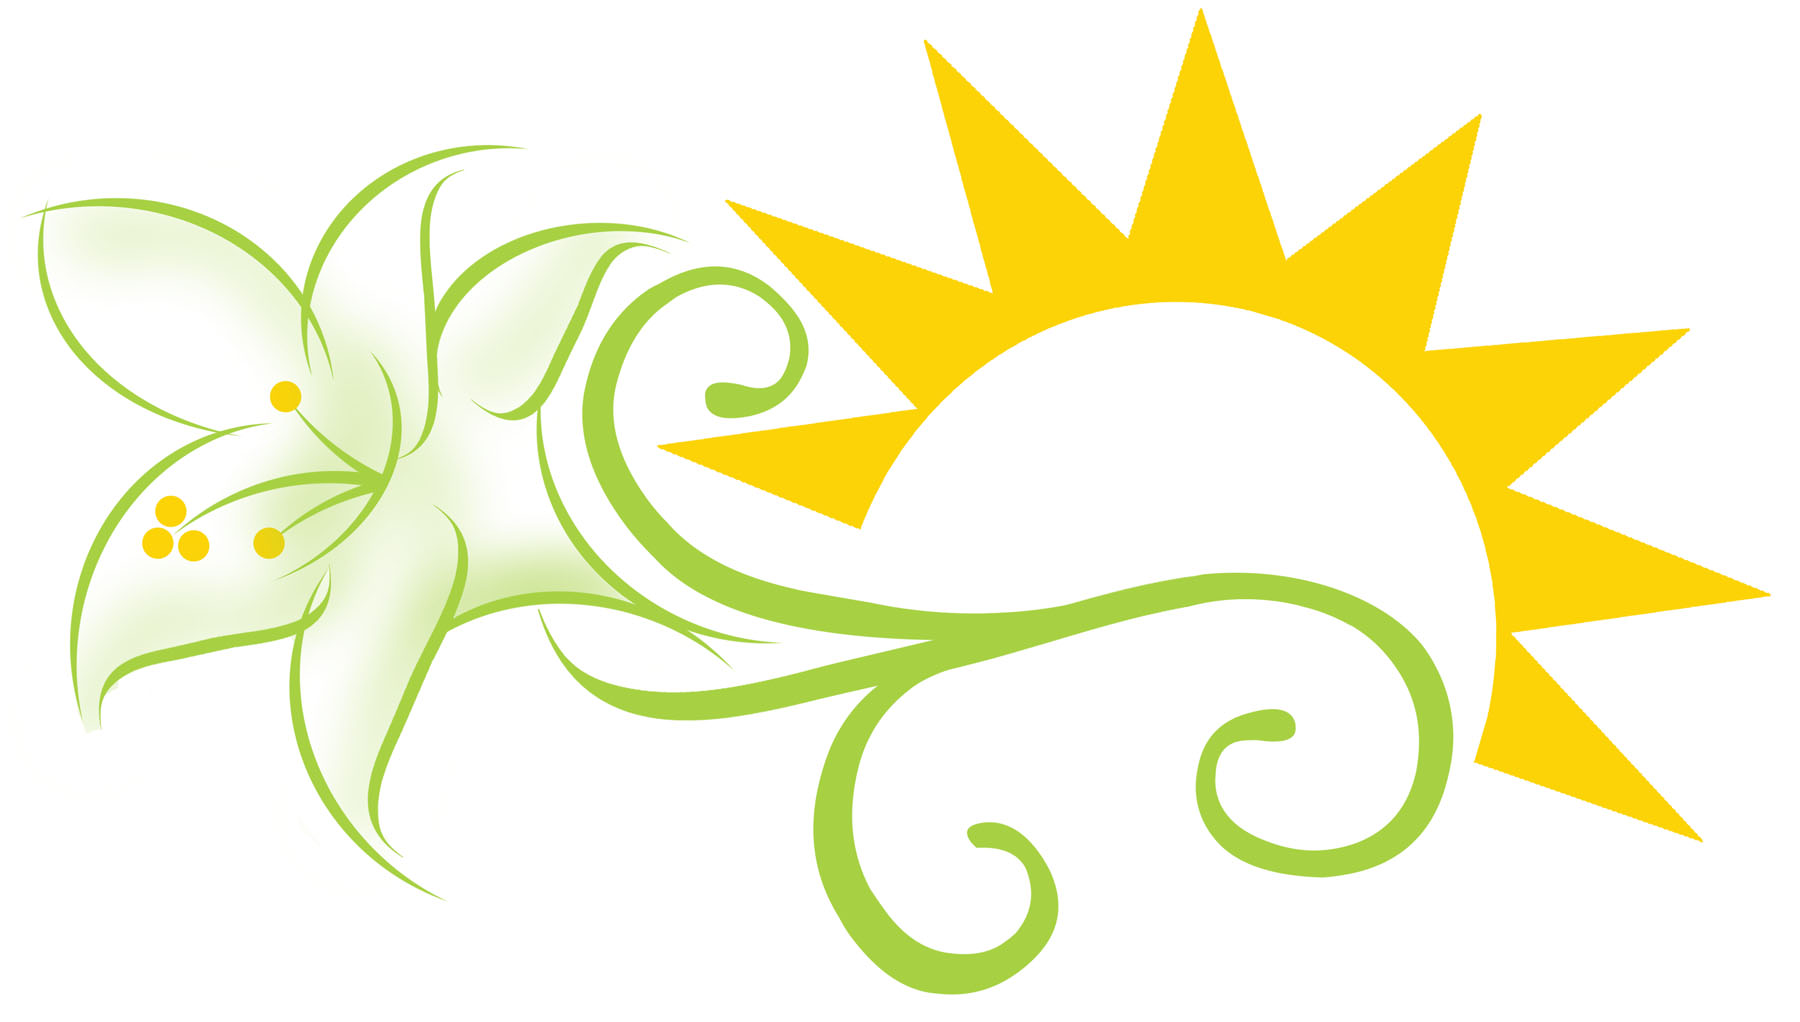 easter lilies free clipart - photo #1